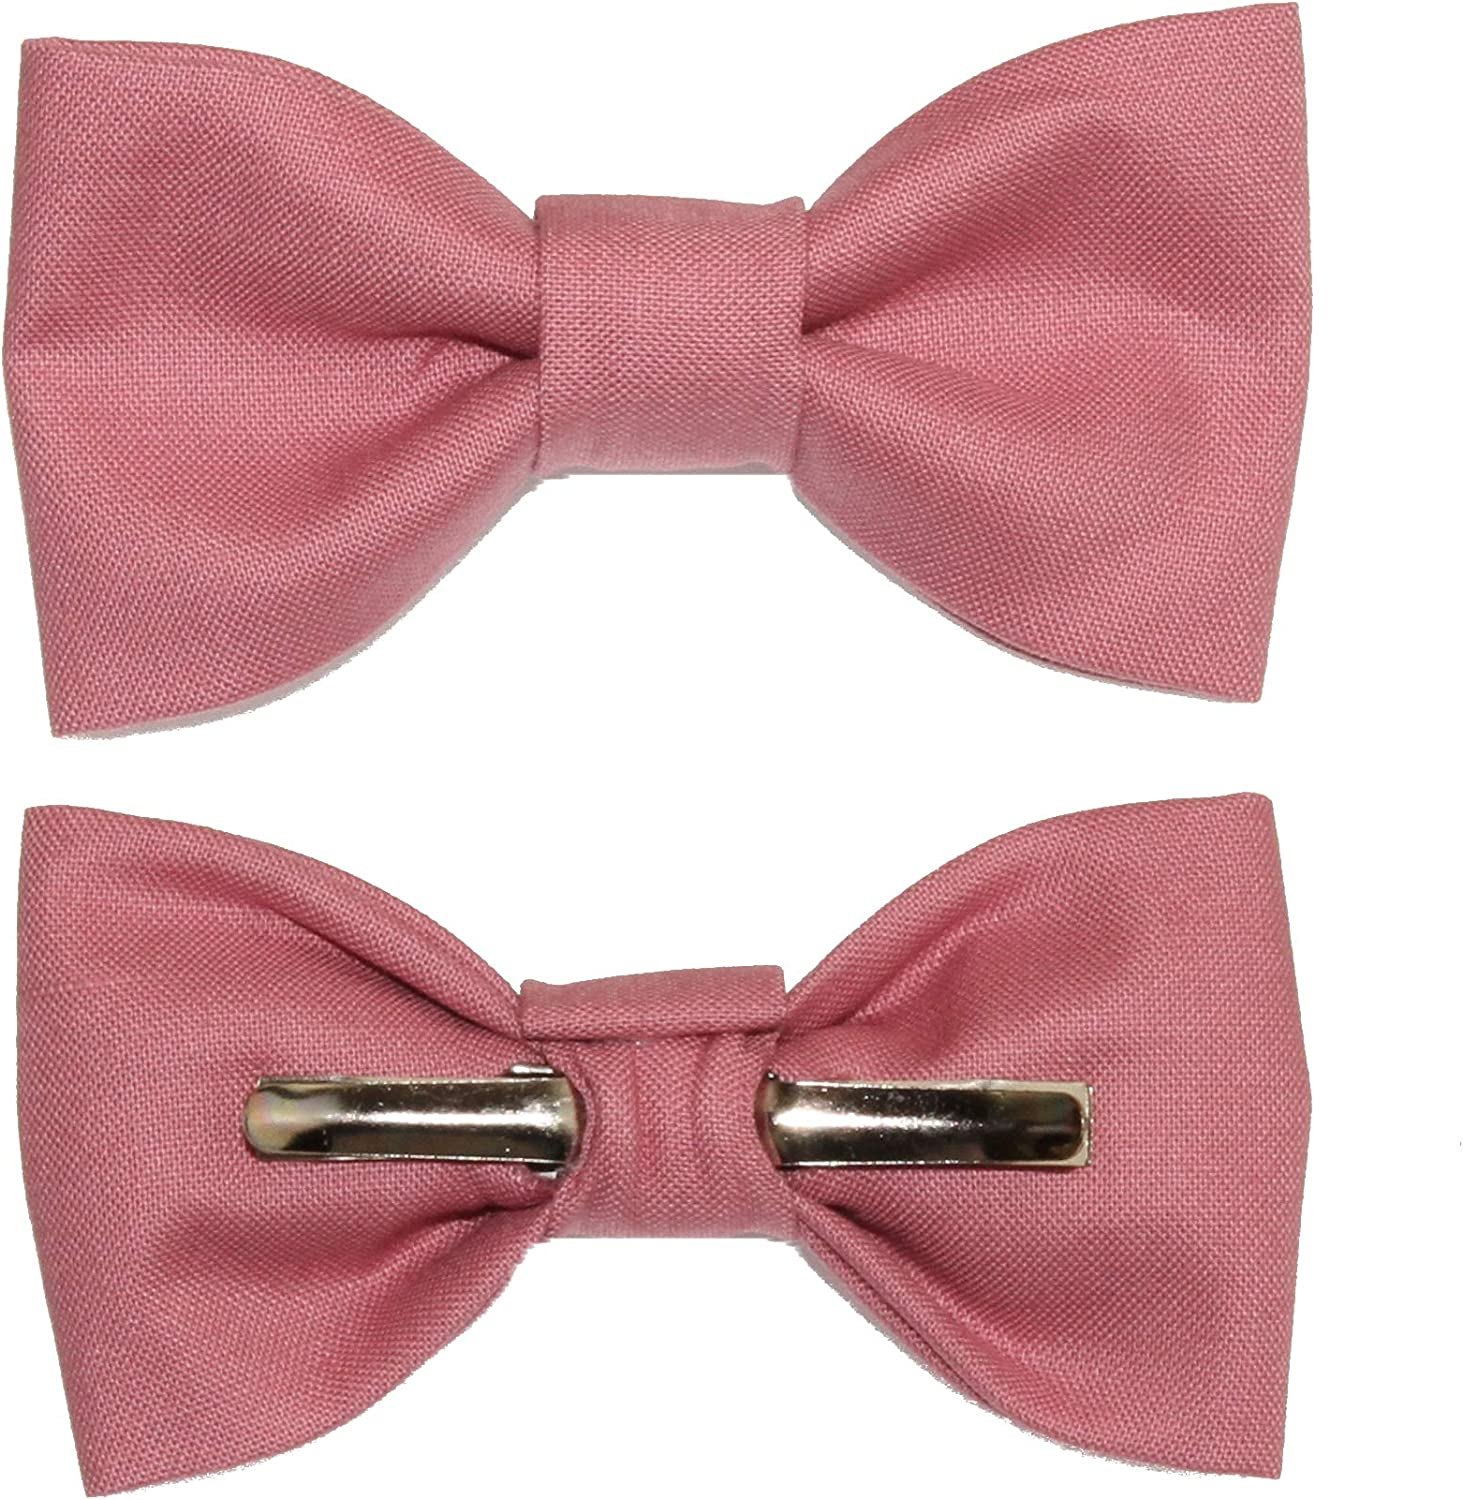 Toddler Boy 3T 4T Rose Pink Clip On Cotton Bow Tie Bowtie by amy2004marie